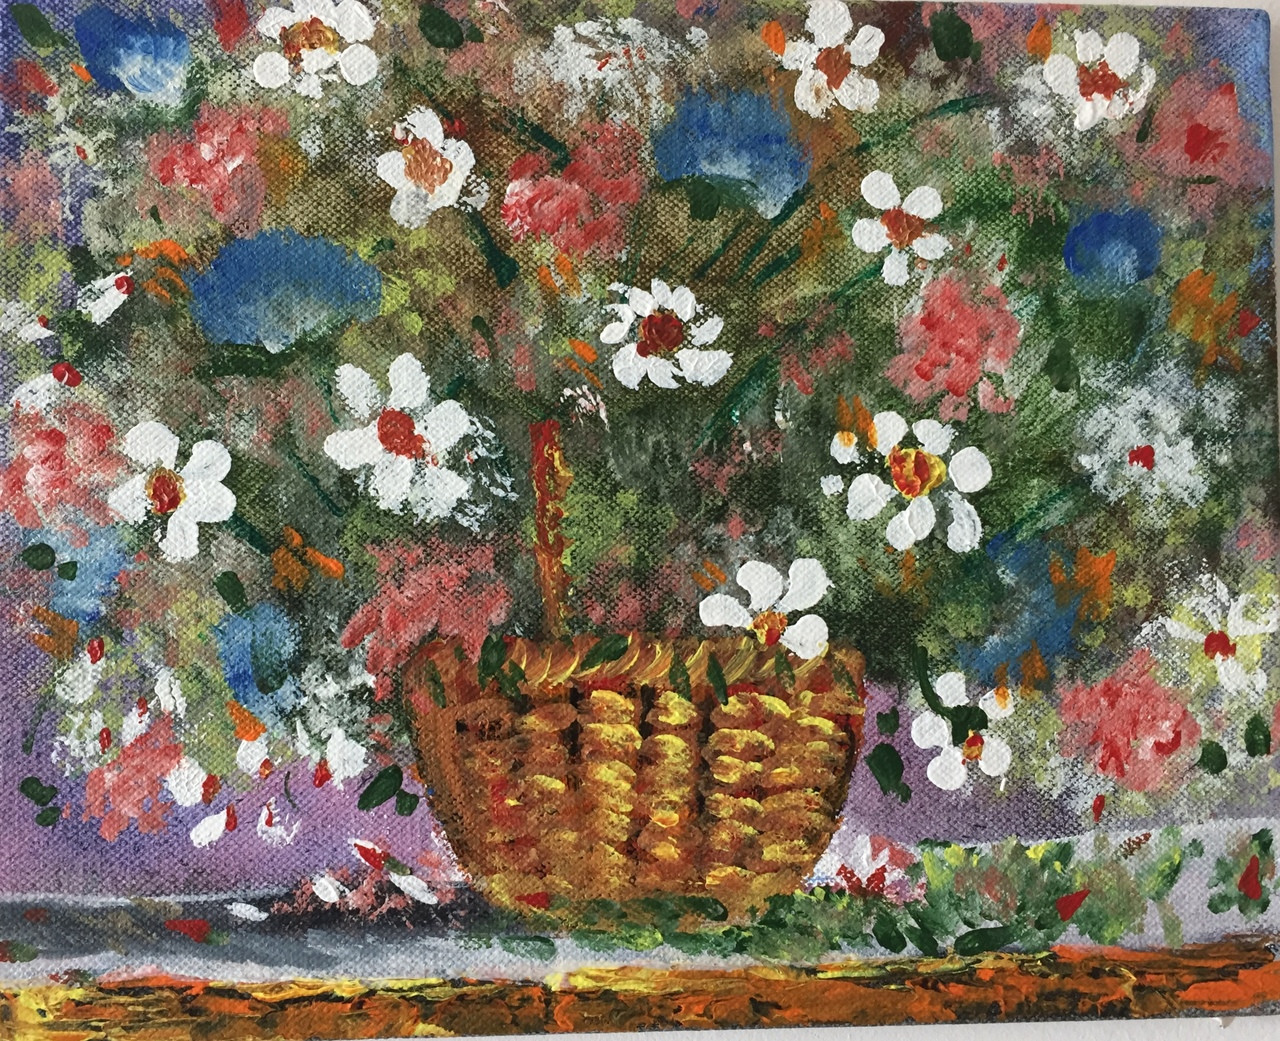 Buy Acrylic flower vase Handmade Painting by Nithya Gopal. CodeART_4154_25732 - Paintings for Sale online in India. & Buy Acrylic flower vase Handmade Painting by Nithya Gopal. Code ...